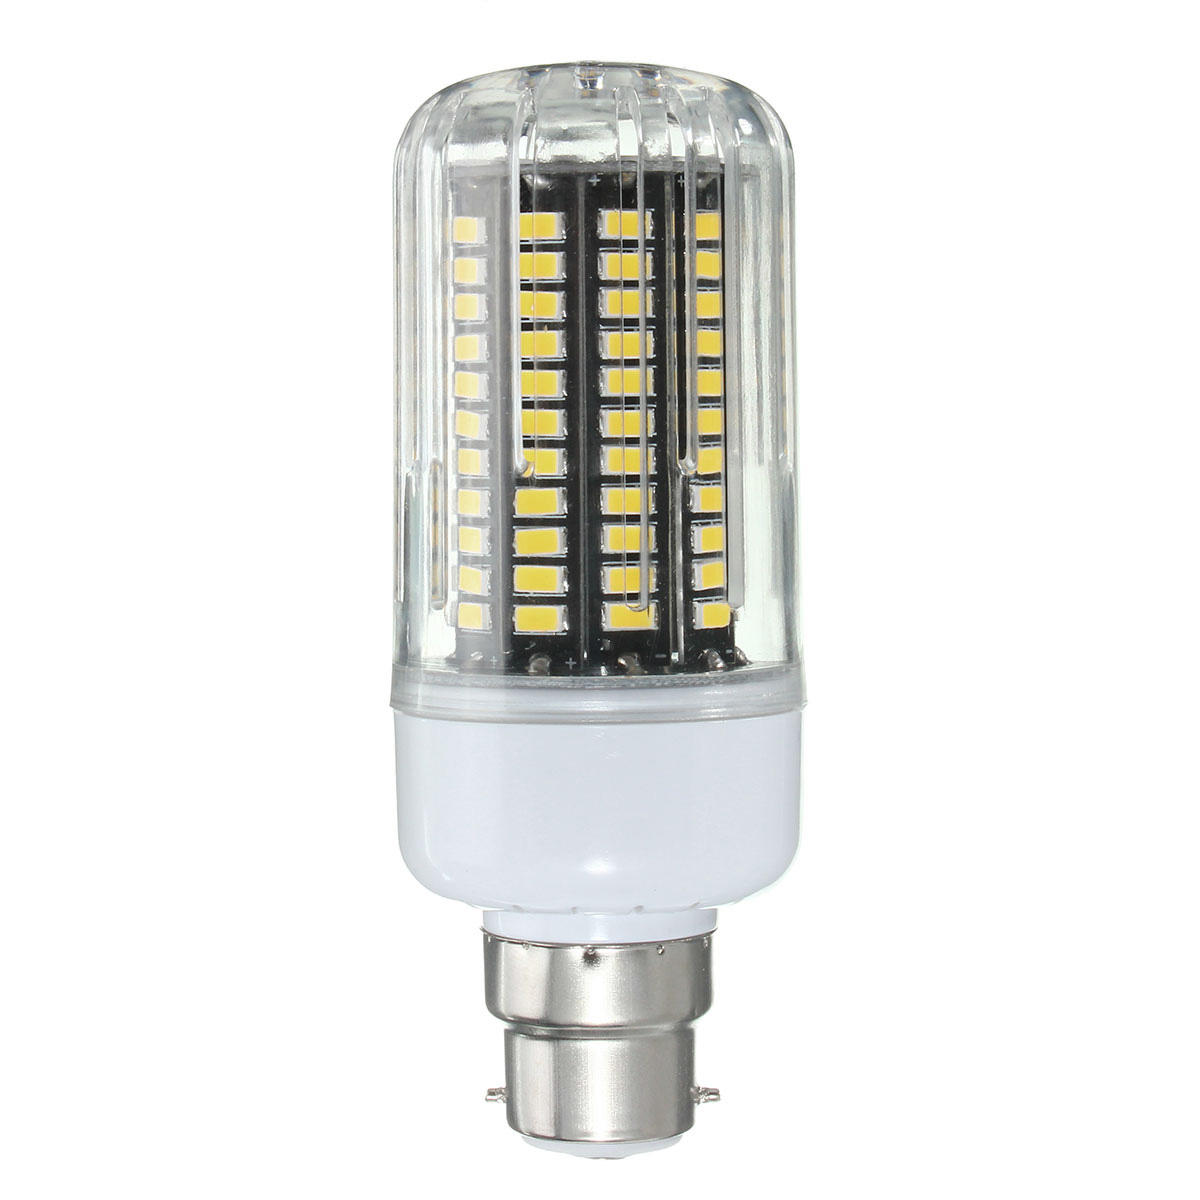 E27 E14 E12E E17 B22 15W 130 SMD 5736 LED Pure White Warm White Cover Corn Bulb AC85 265V - 10